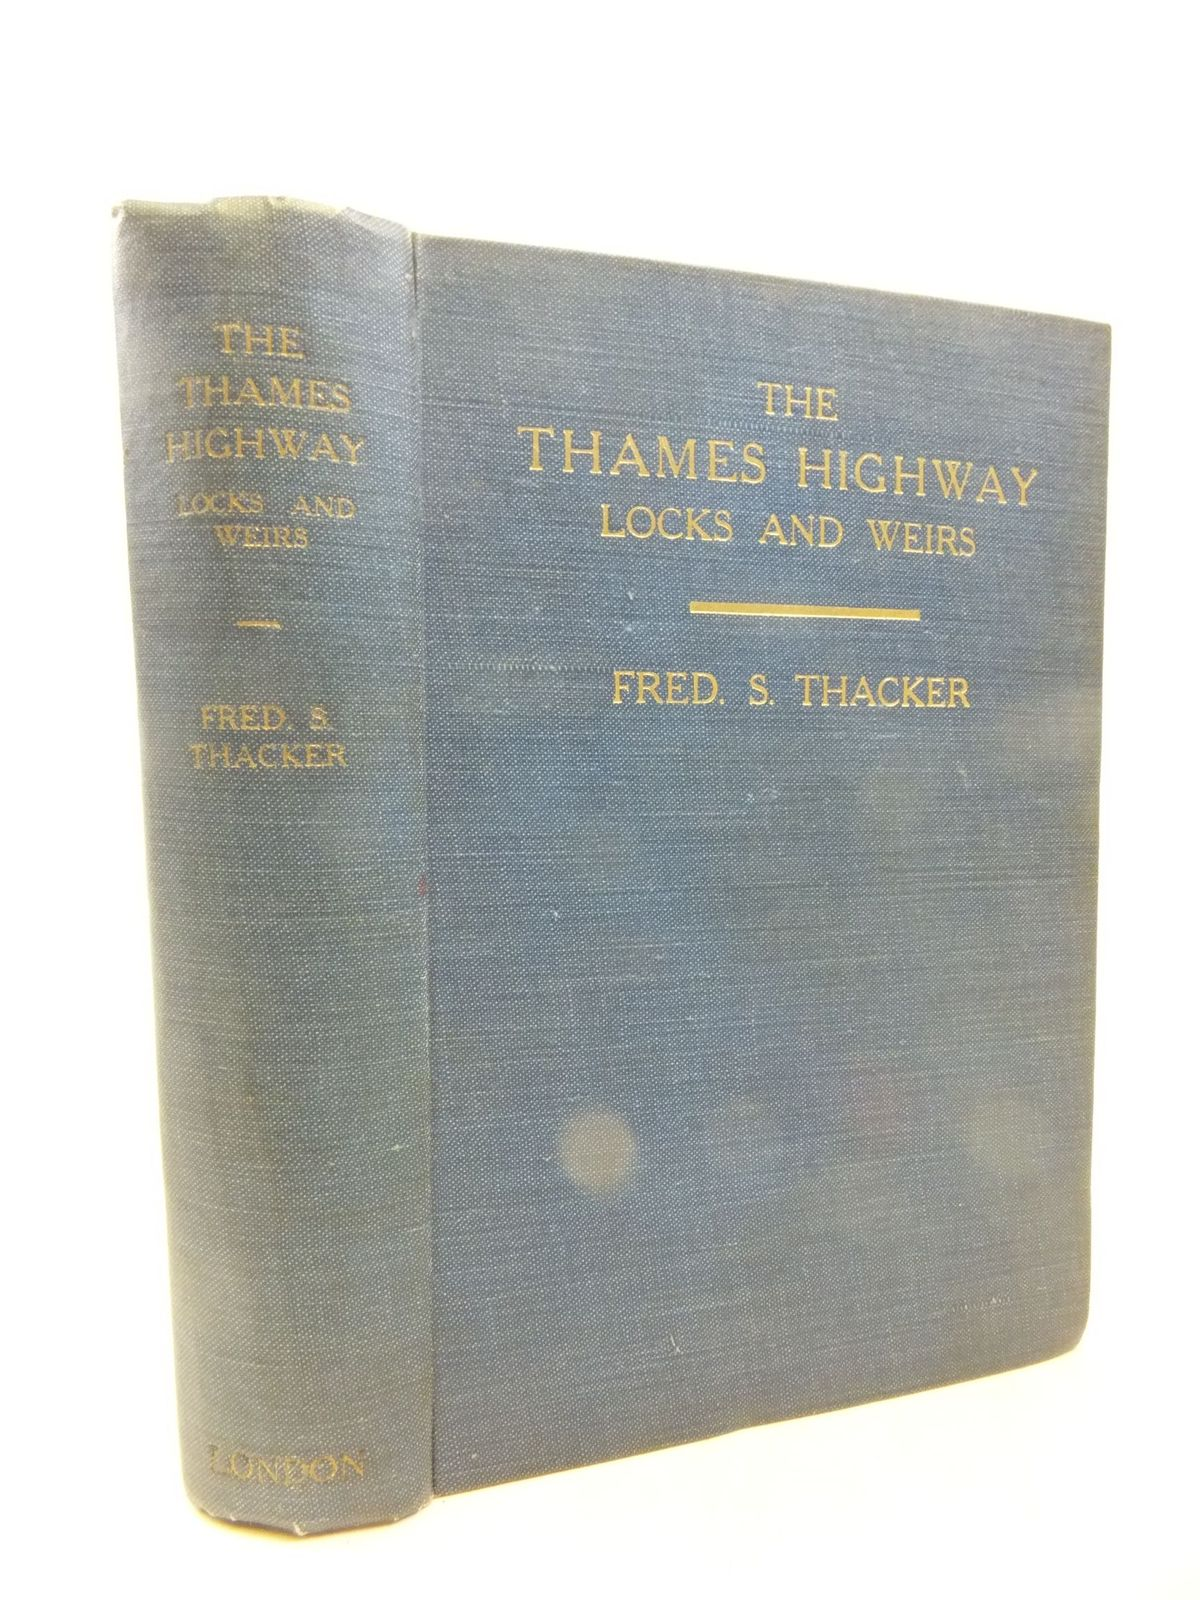 Photo of THE THAMES HIGHWAY A HISTORY OF THE LOCKS AND WEIRS written by Thacker, Fred S. published by Fred S. Thacker (STOCK CODE: 2114739)  for sale by Stella & Rose's Books